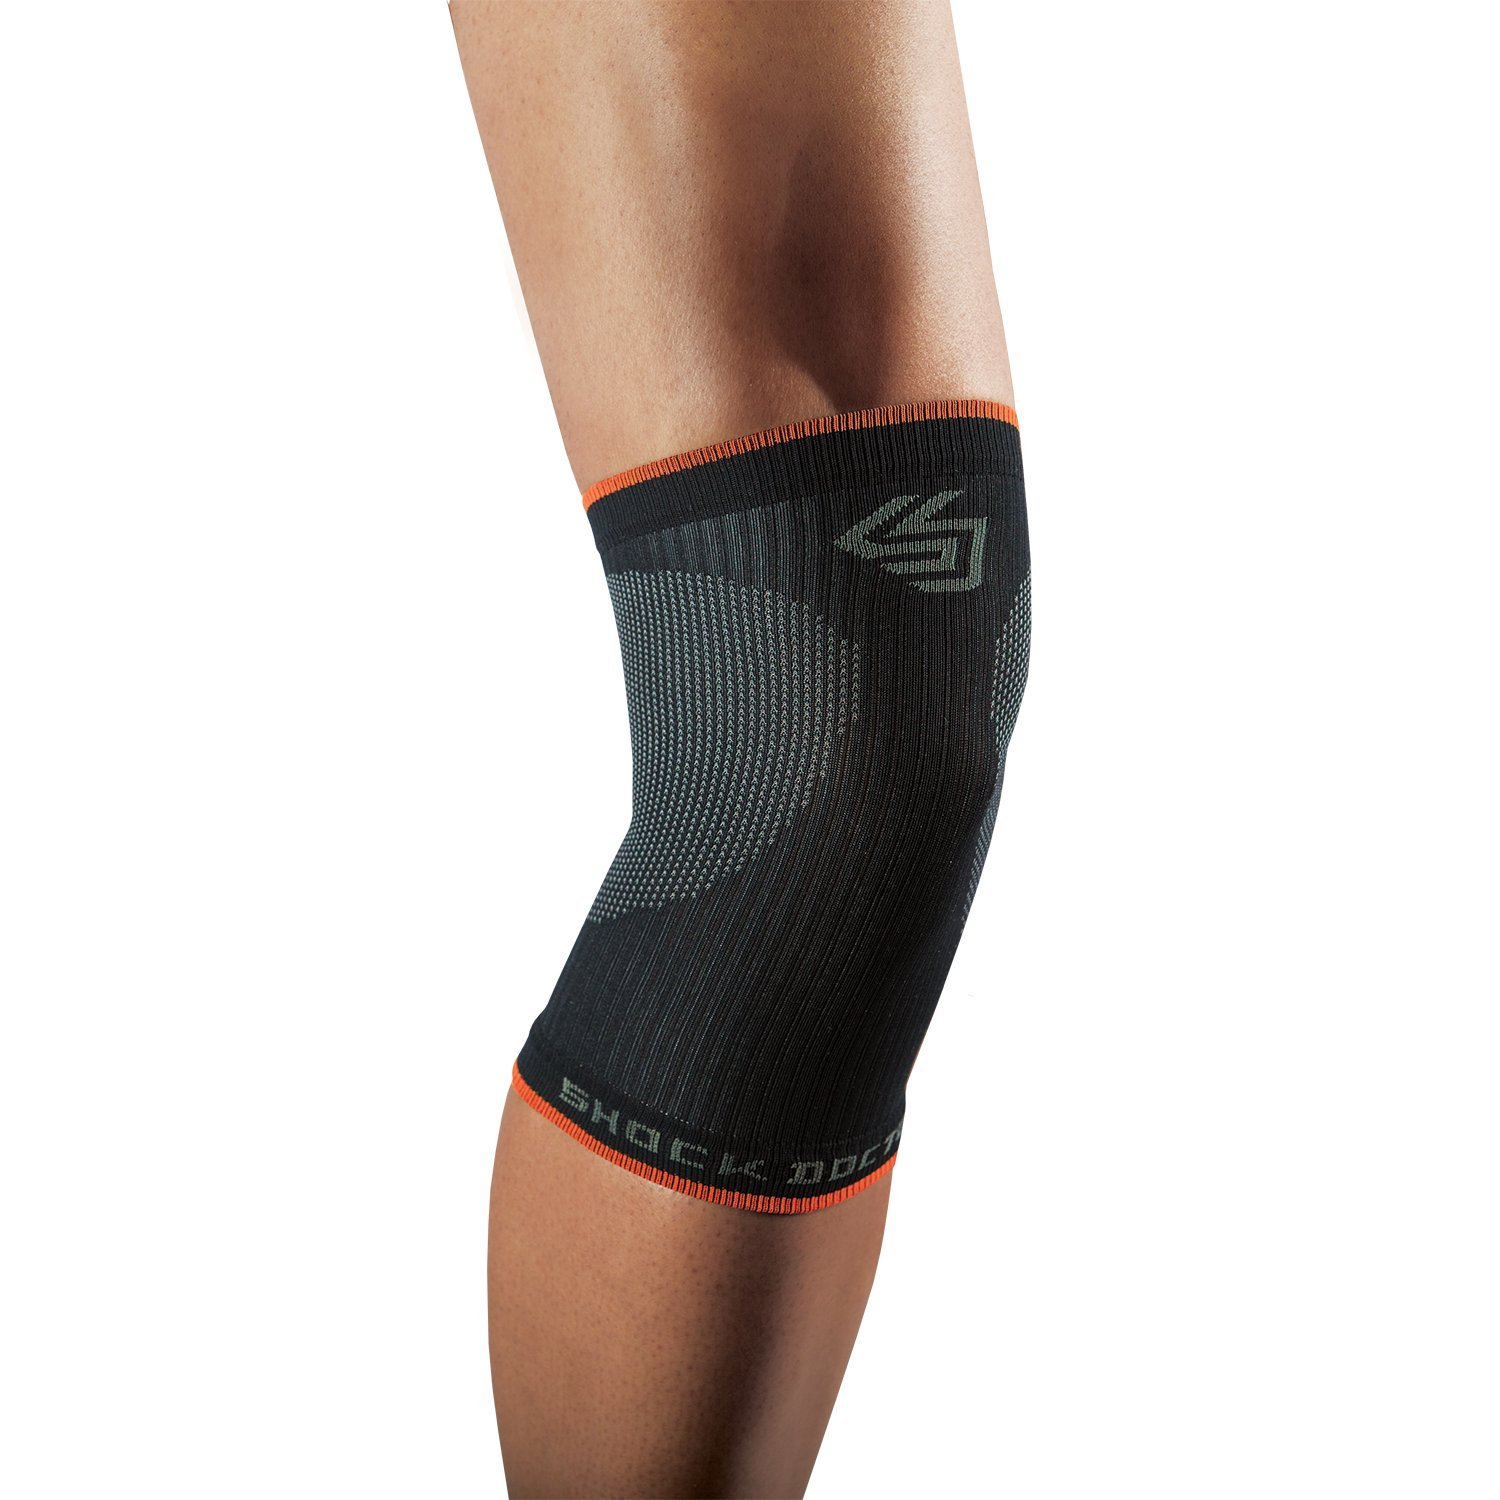 Shock Doctor SVR Compression Knee Sleeve Support for Running, Jogging, Sports, Joint Pain Relief, Arthritis and Injury Recovery, Single Sleeve 732-01-33-P